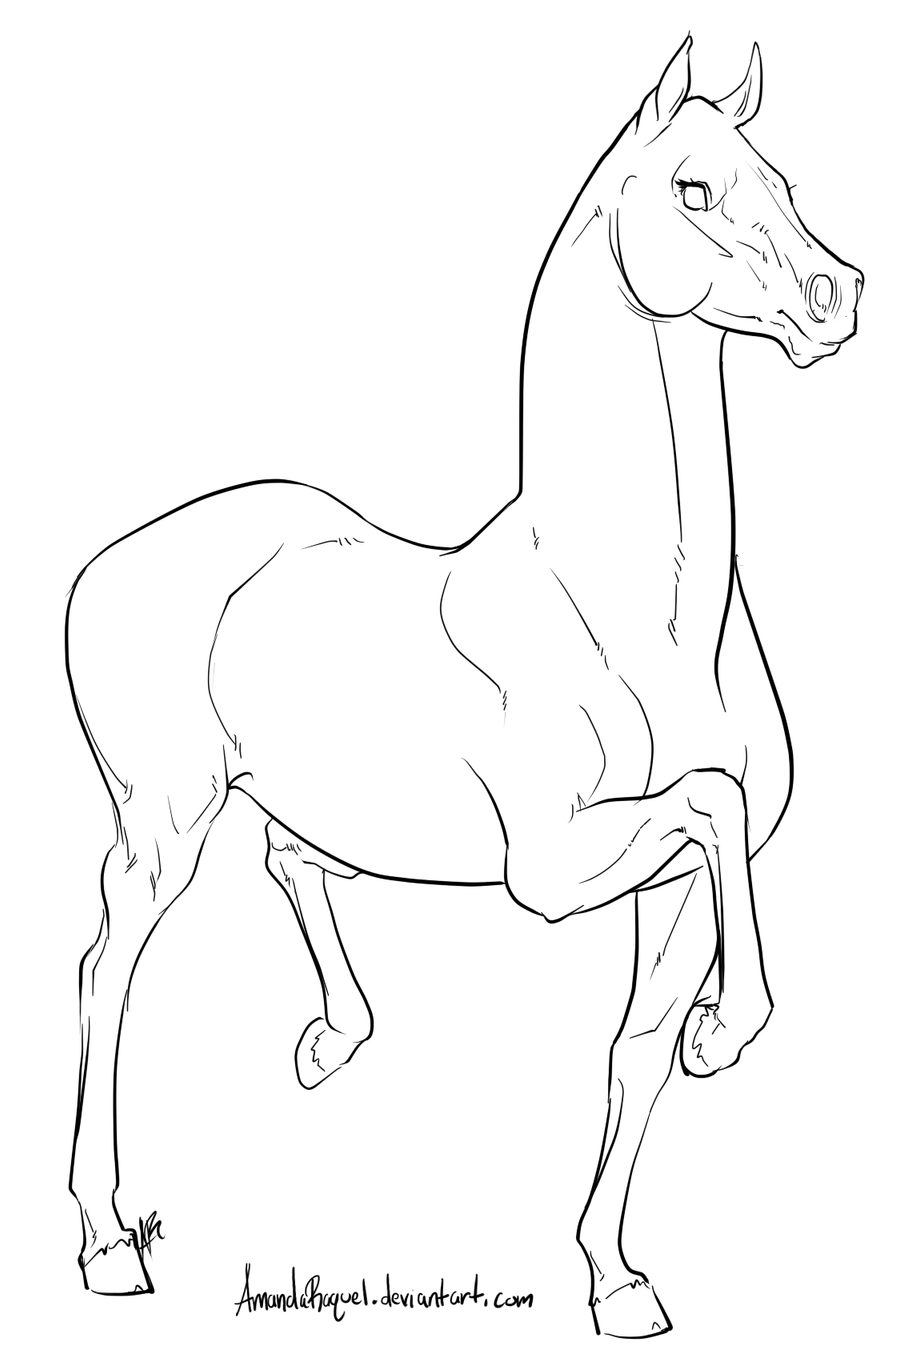 Line Art Deviantart : Racking horse lineart by manic and monstrous on deviantart